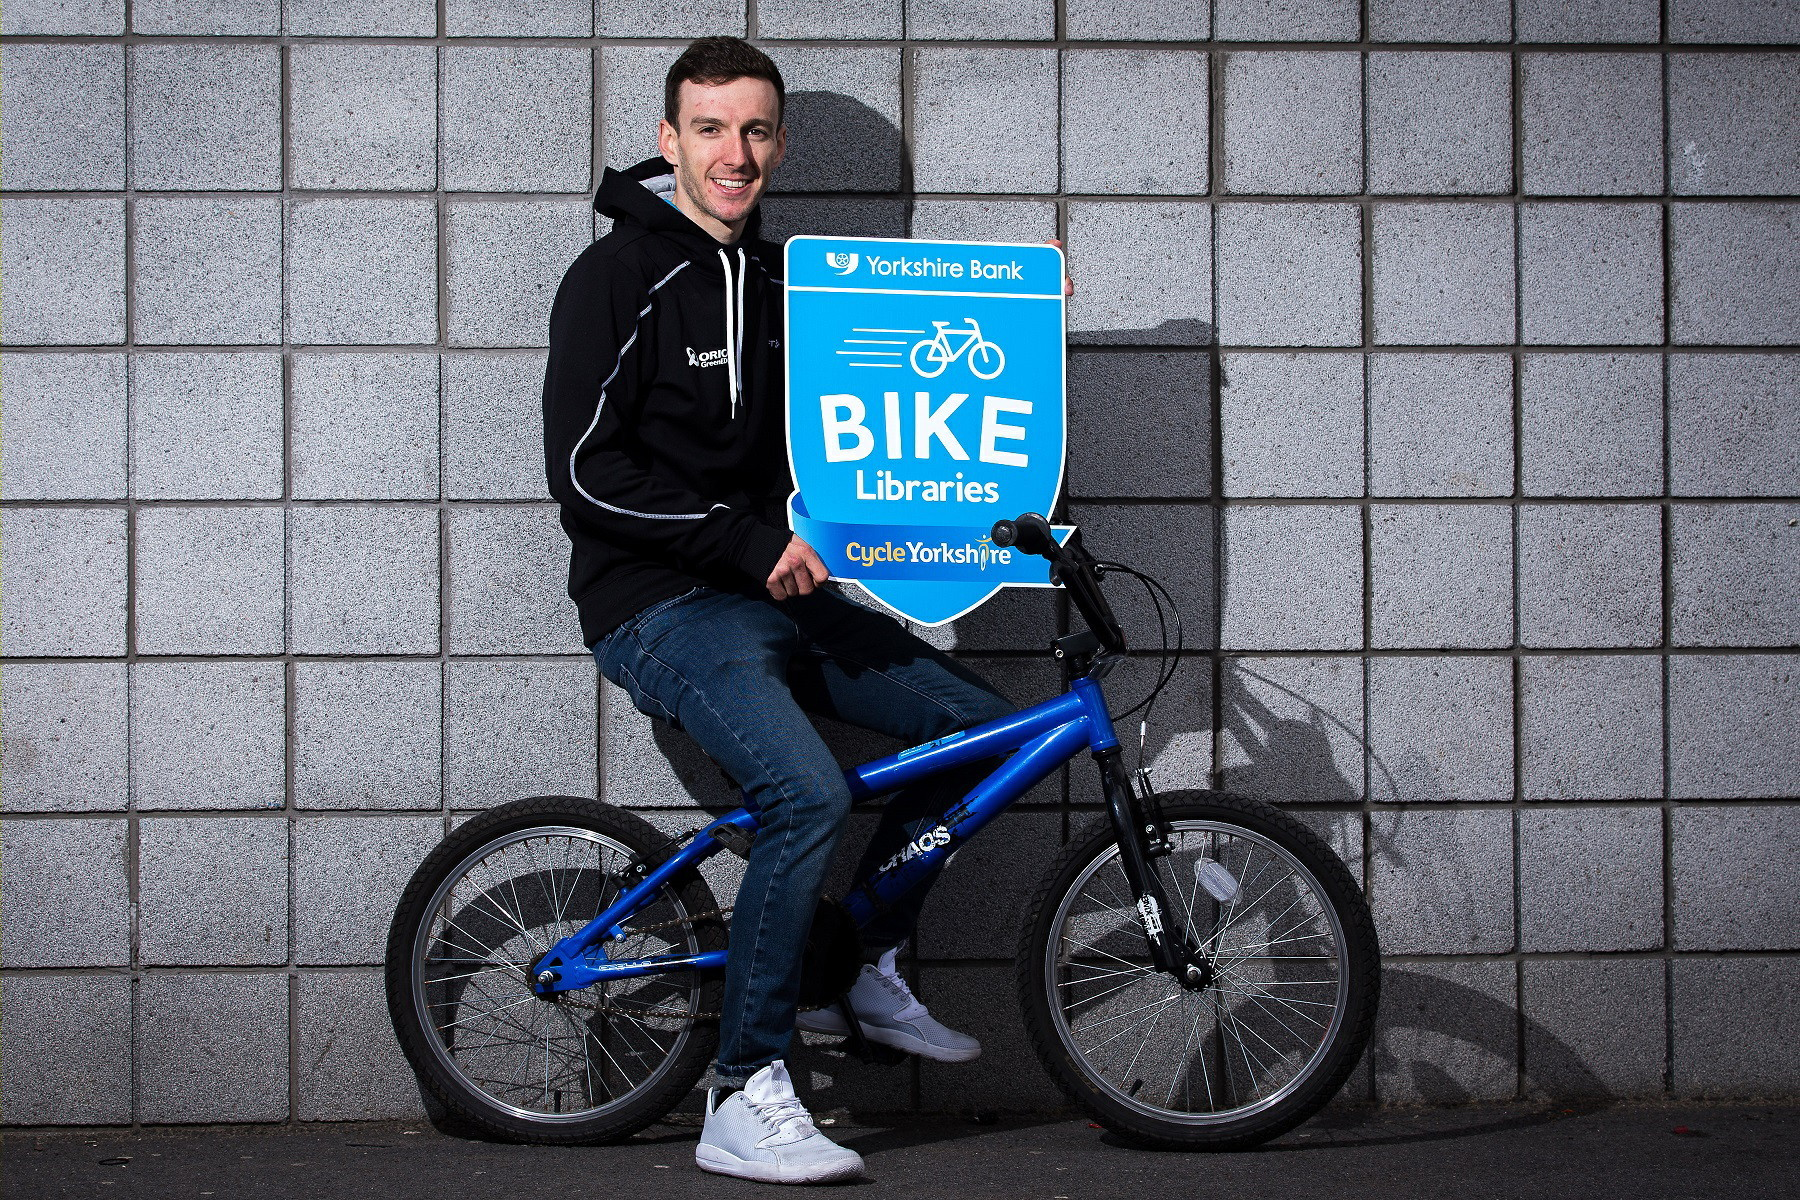 British road and track racing cyclist Adam Yates, who has supported the Yorkshire Bank bike library scheme.